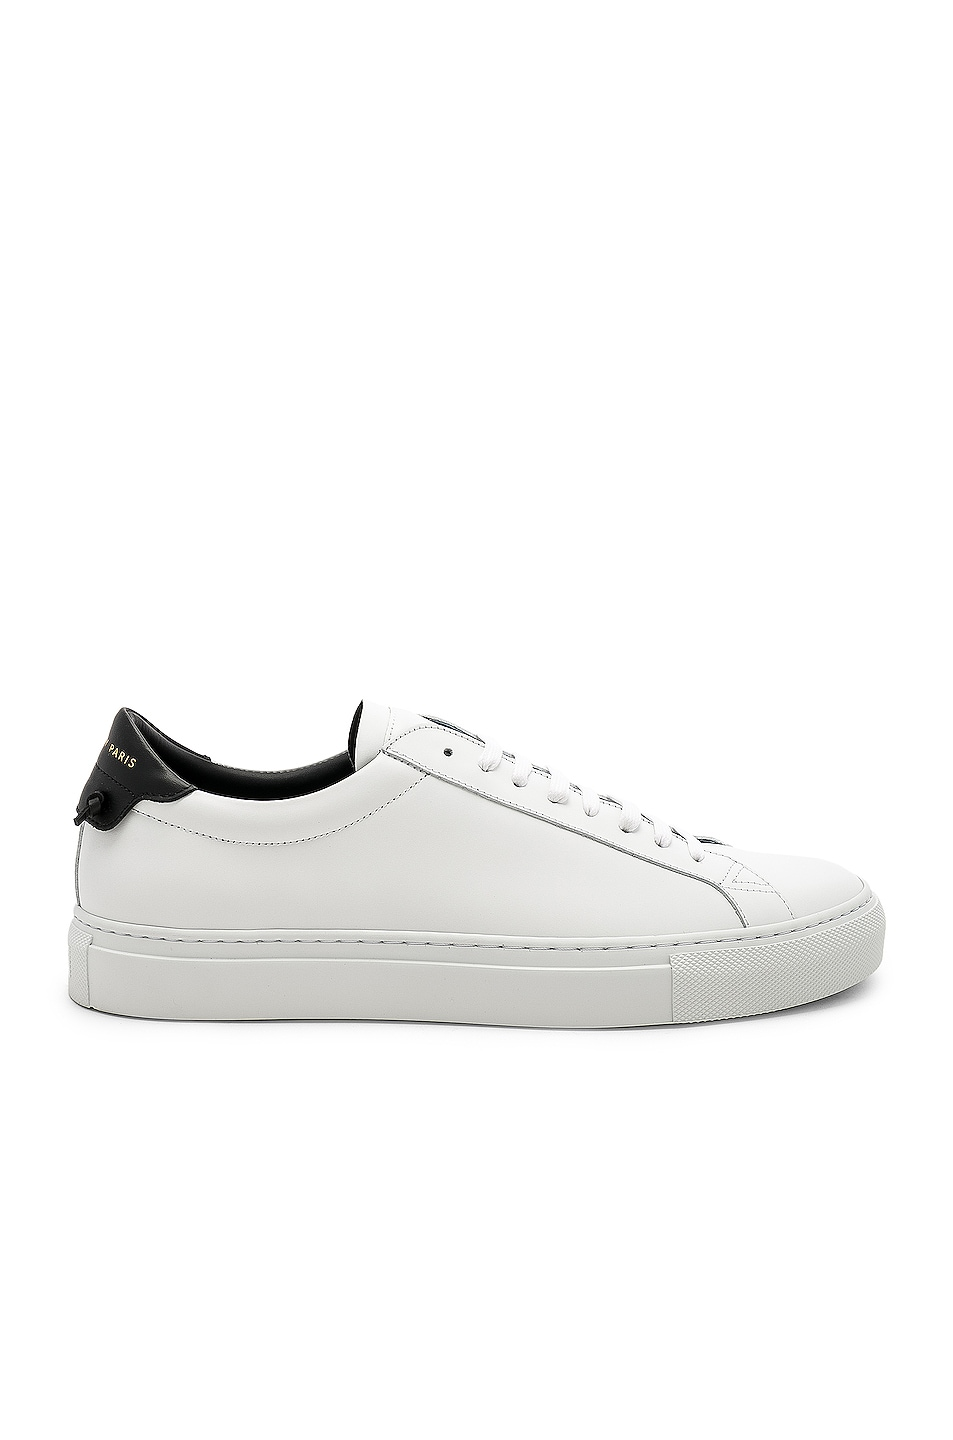 Image 1 of Givenchy Leather Low Sneakers in White & Black